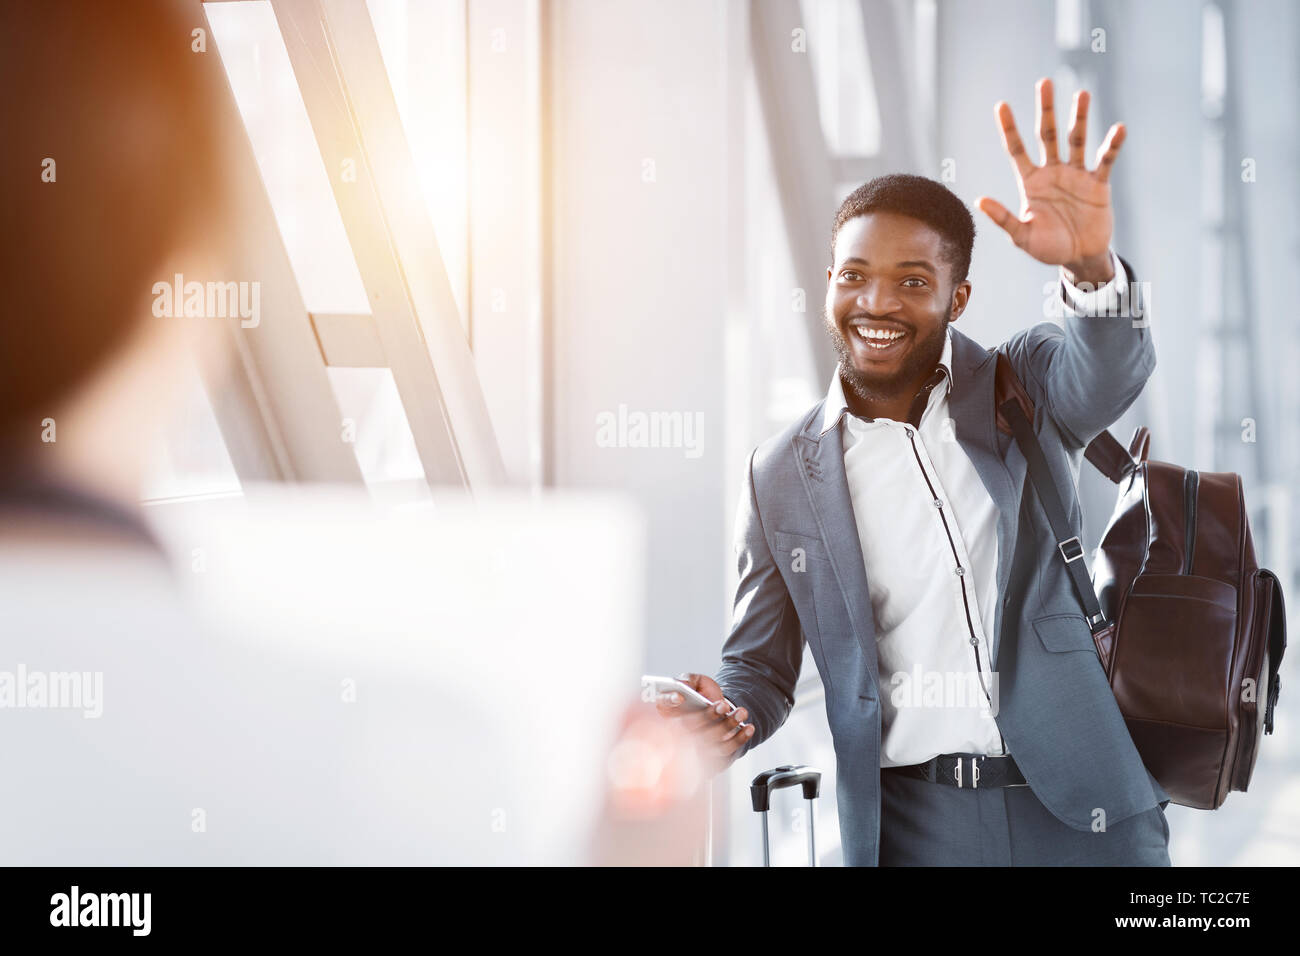 Hello! Businessman Waving To Partner Waiting For Him In Airport - Stock Image